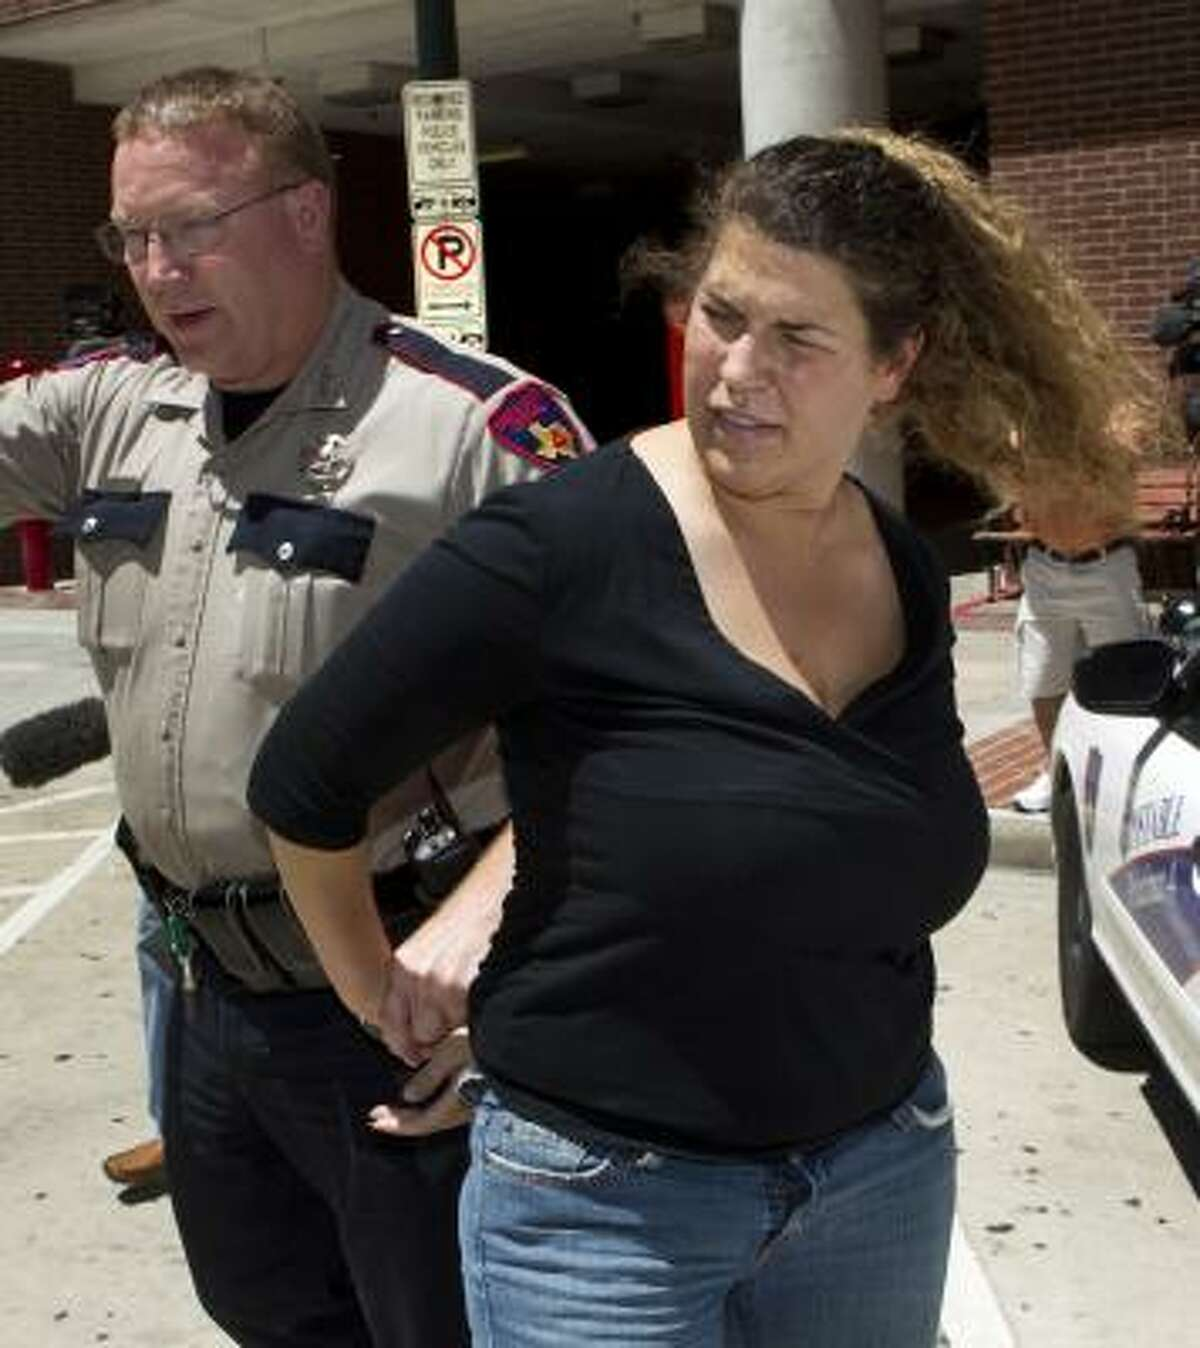 Intoxicated manslaughter suspect Julie Little, 38, is taken into custody Thursday, May 26, 2011, in Houston.